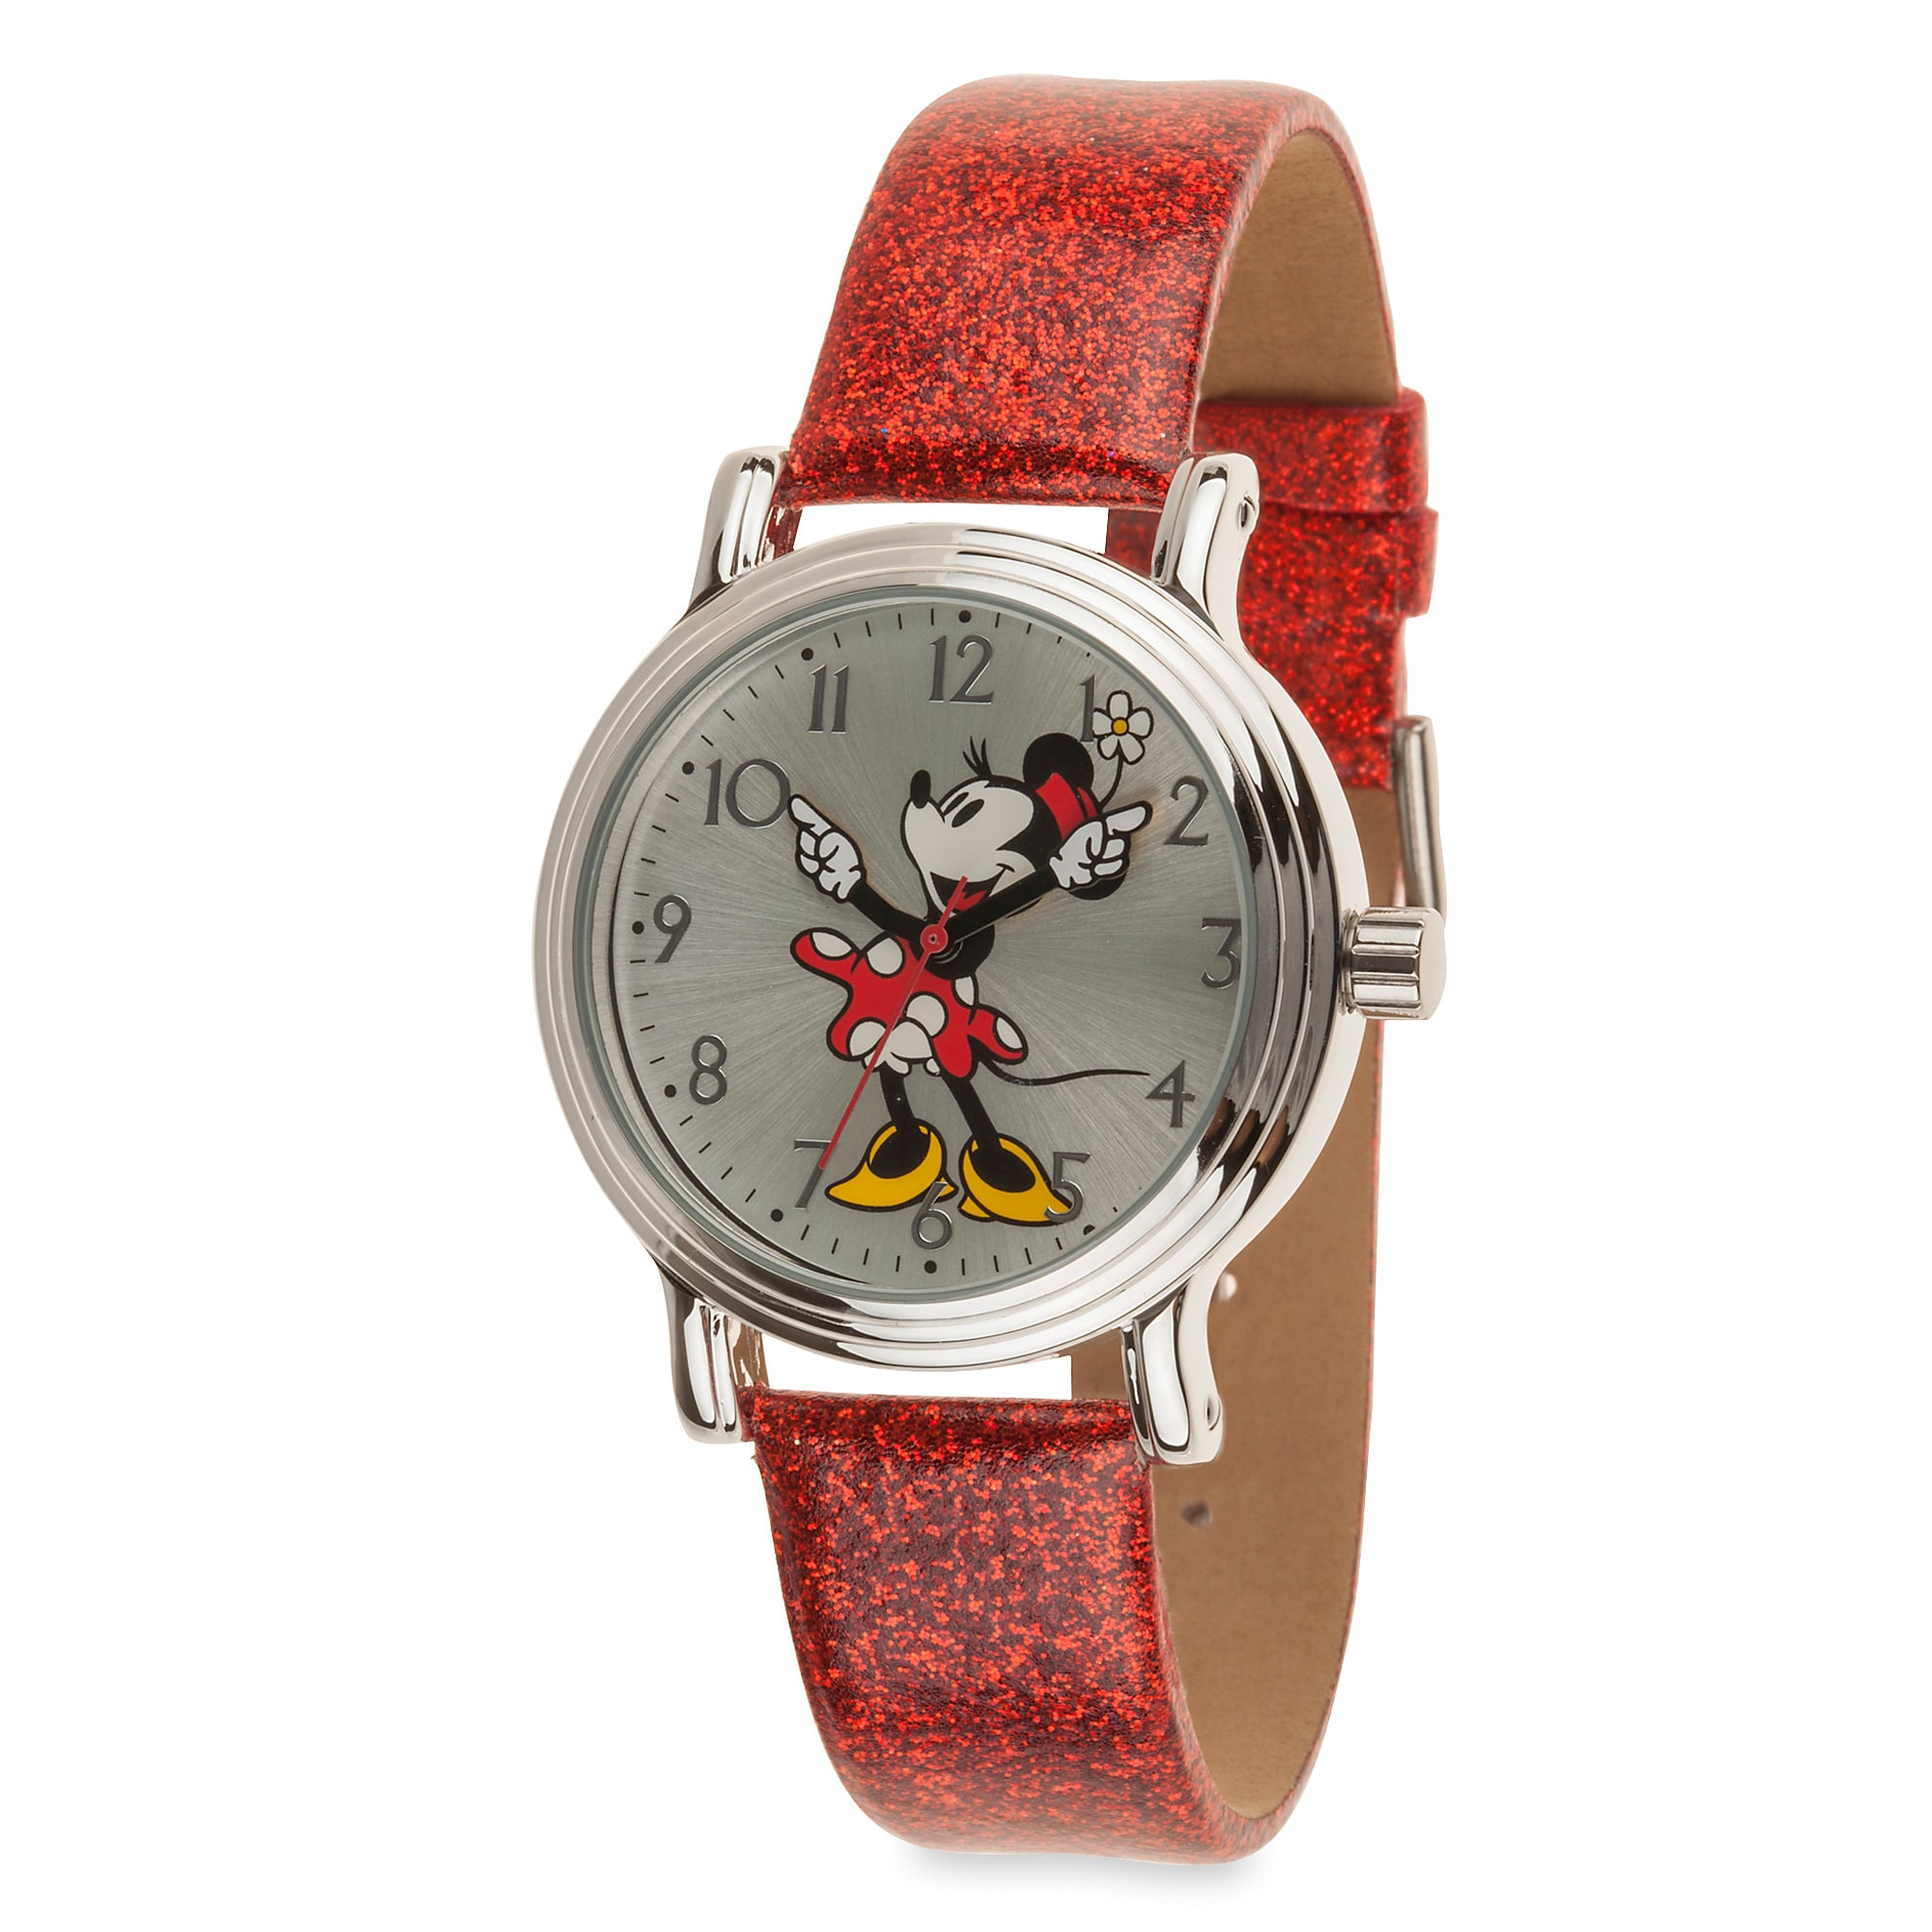 lady geese woman leather watches product unisex genuine unique wrist red original snow man handmade watch japanese art